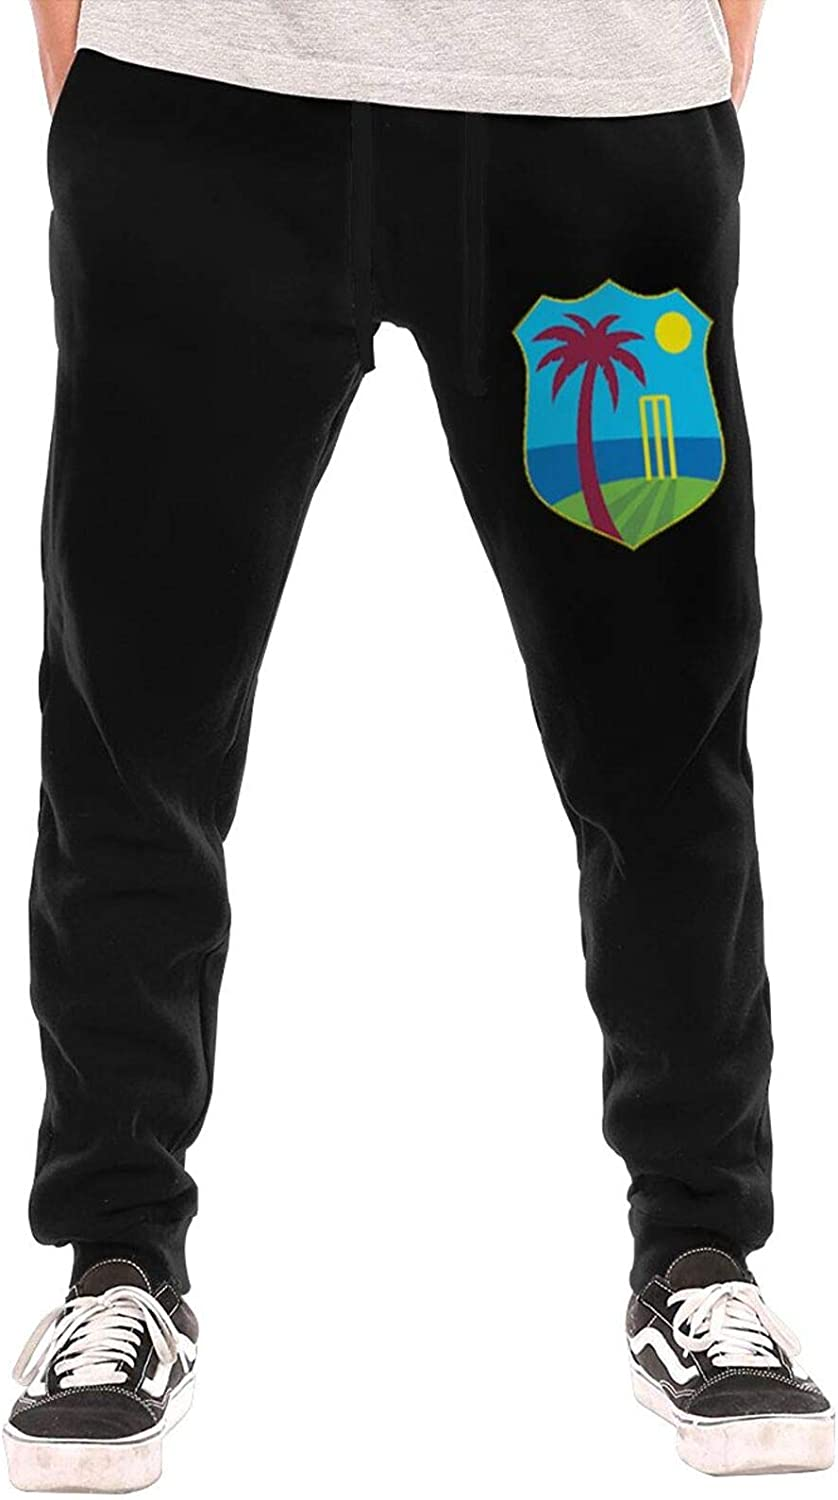 RUIHGK West Indies Cricket Board Flag Men Pants 5 popular Cot Joggers Pure NEW before selling